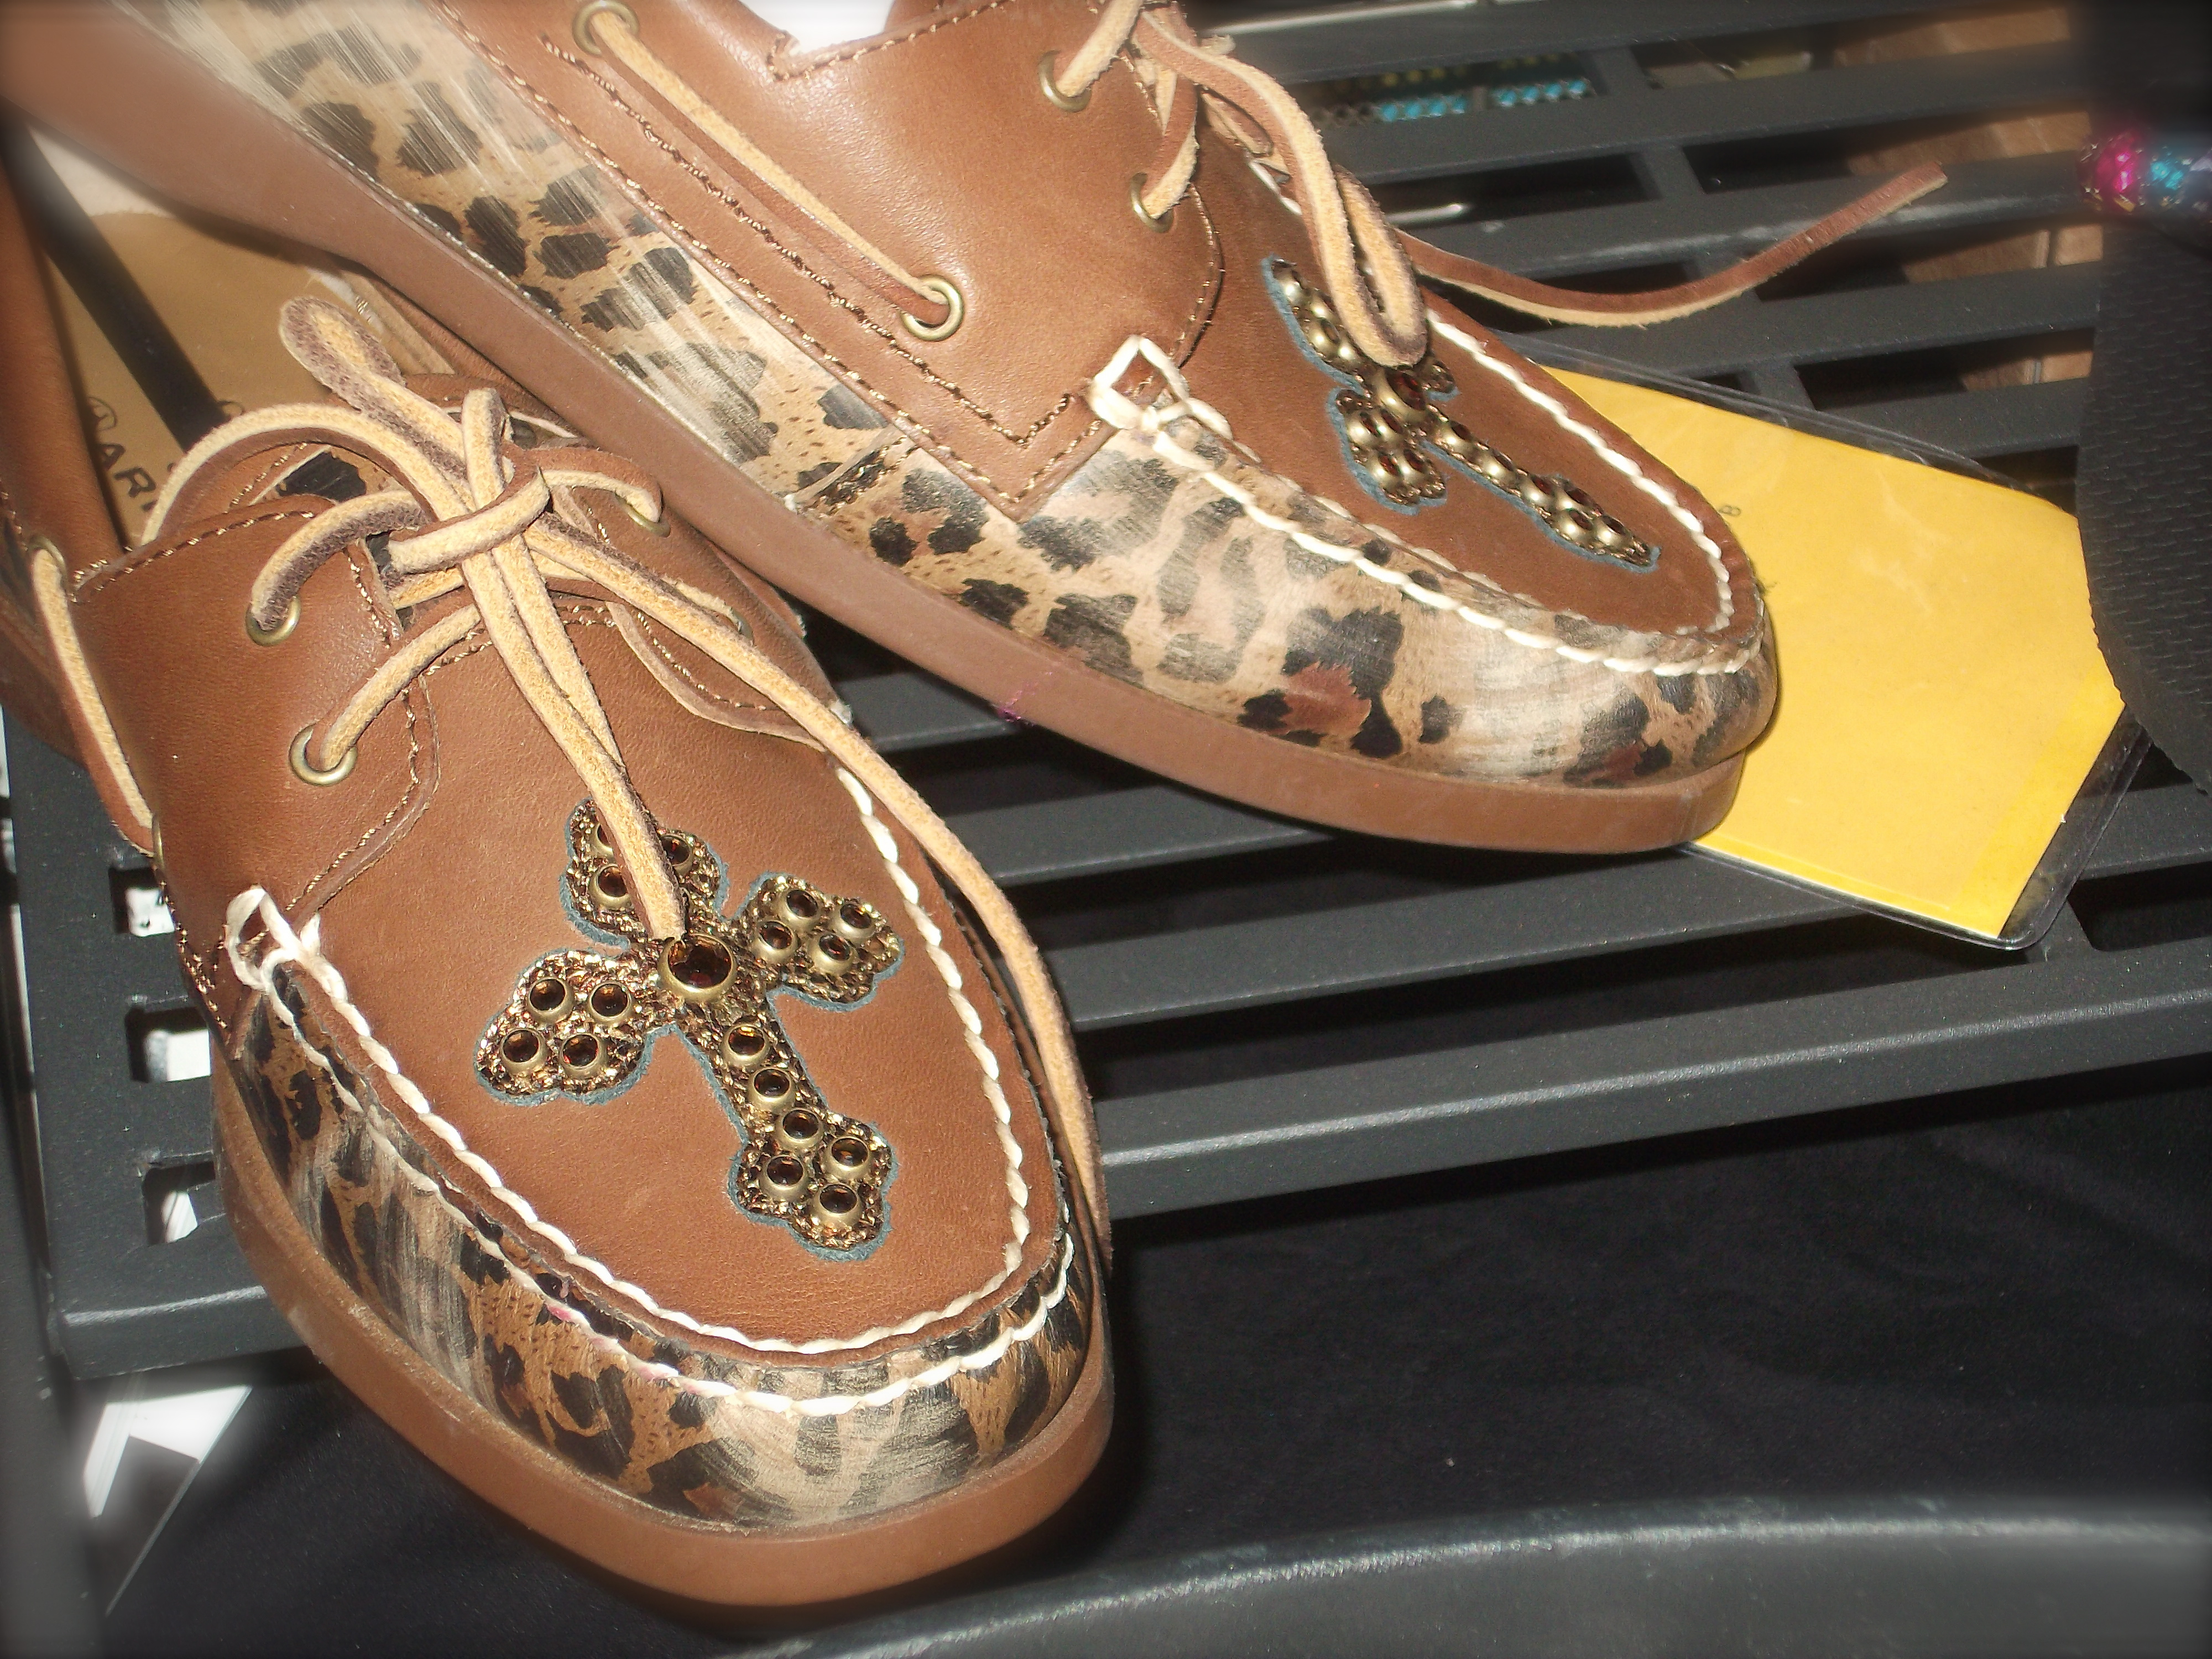 These Boat Style Shoes Are From A Collaboration Between Gypsy Soule Ariat They Also Going To Be Available In The Spring Lots Of Very New Exciting